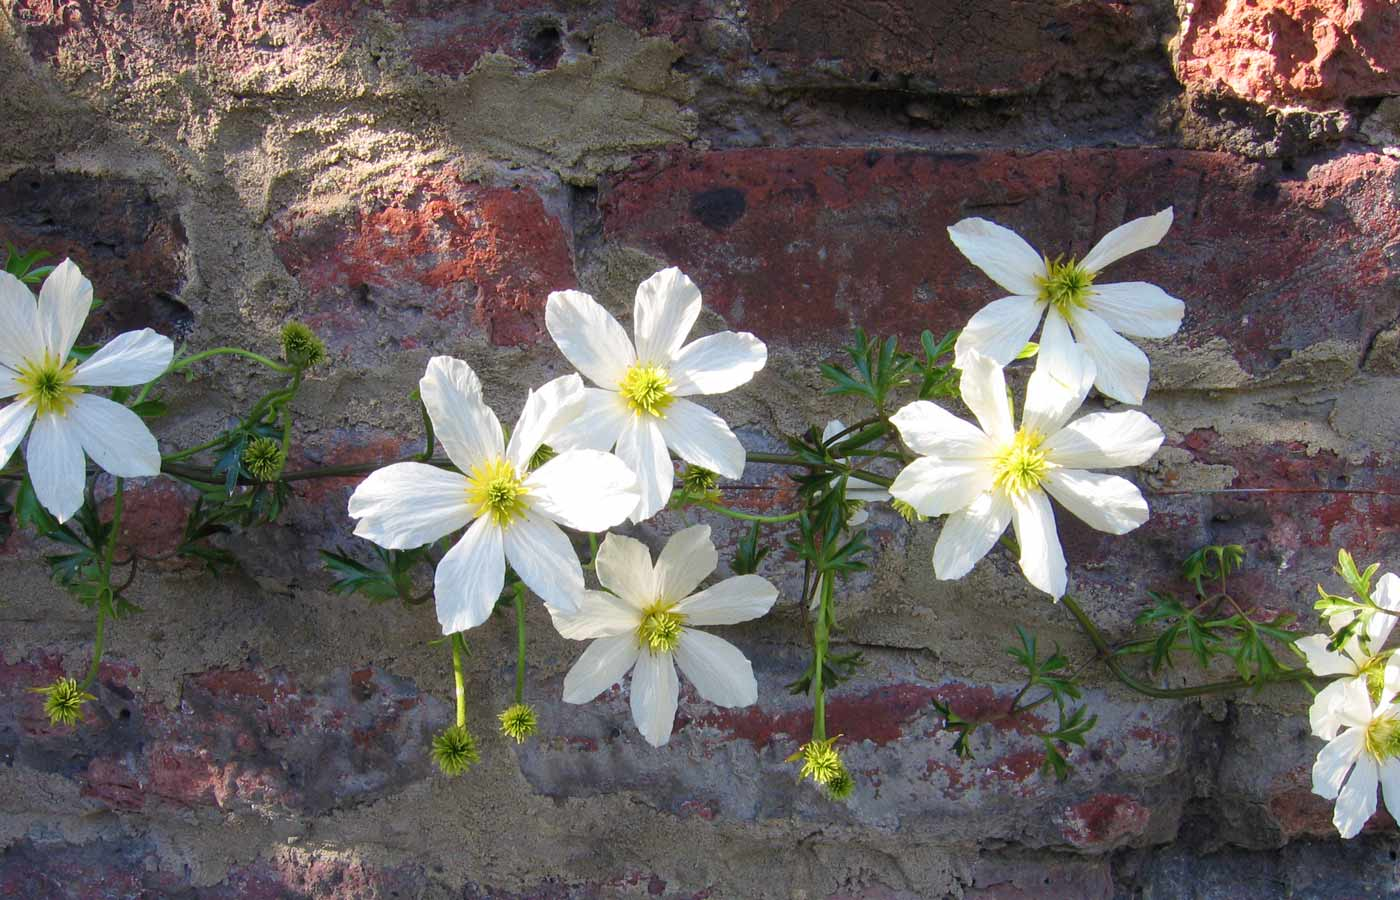 Clematis on the rear wall